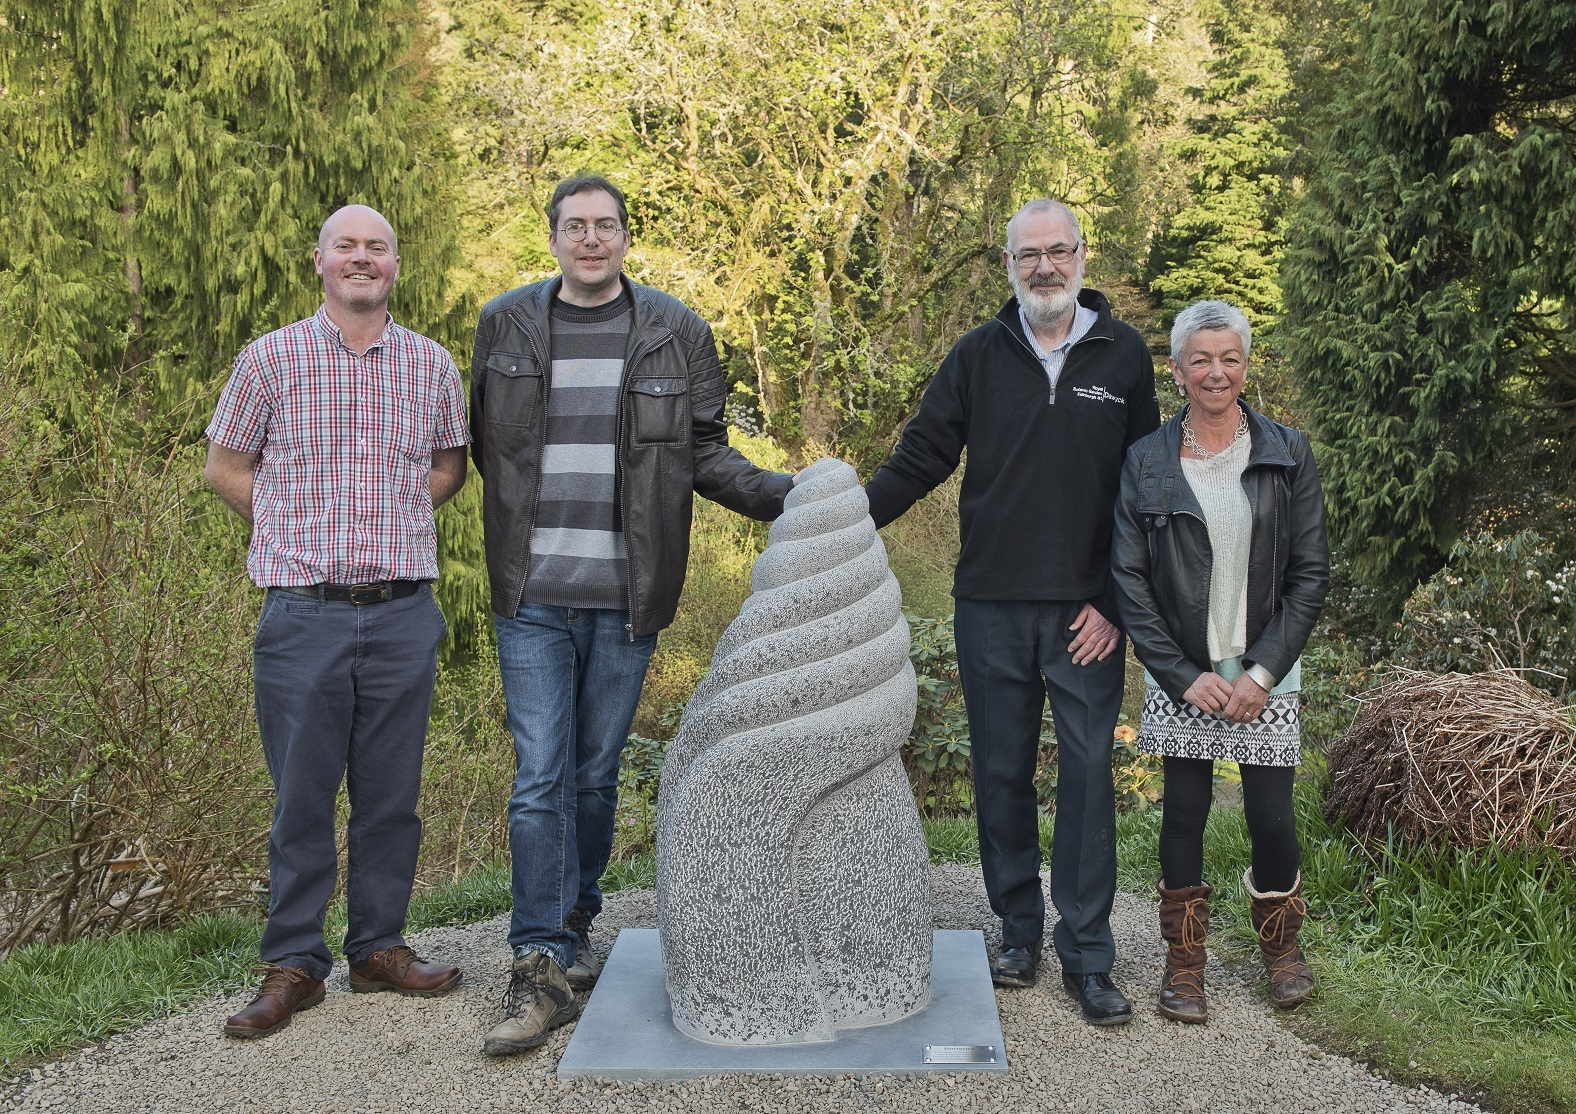 Gavin and Stuart at the new sculpture with Graham Stewart and Susheila Jamieson